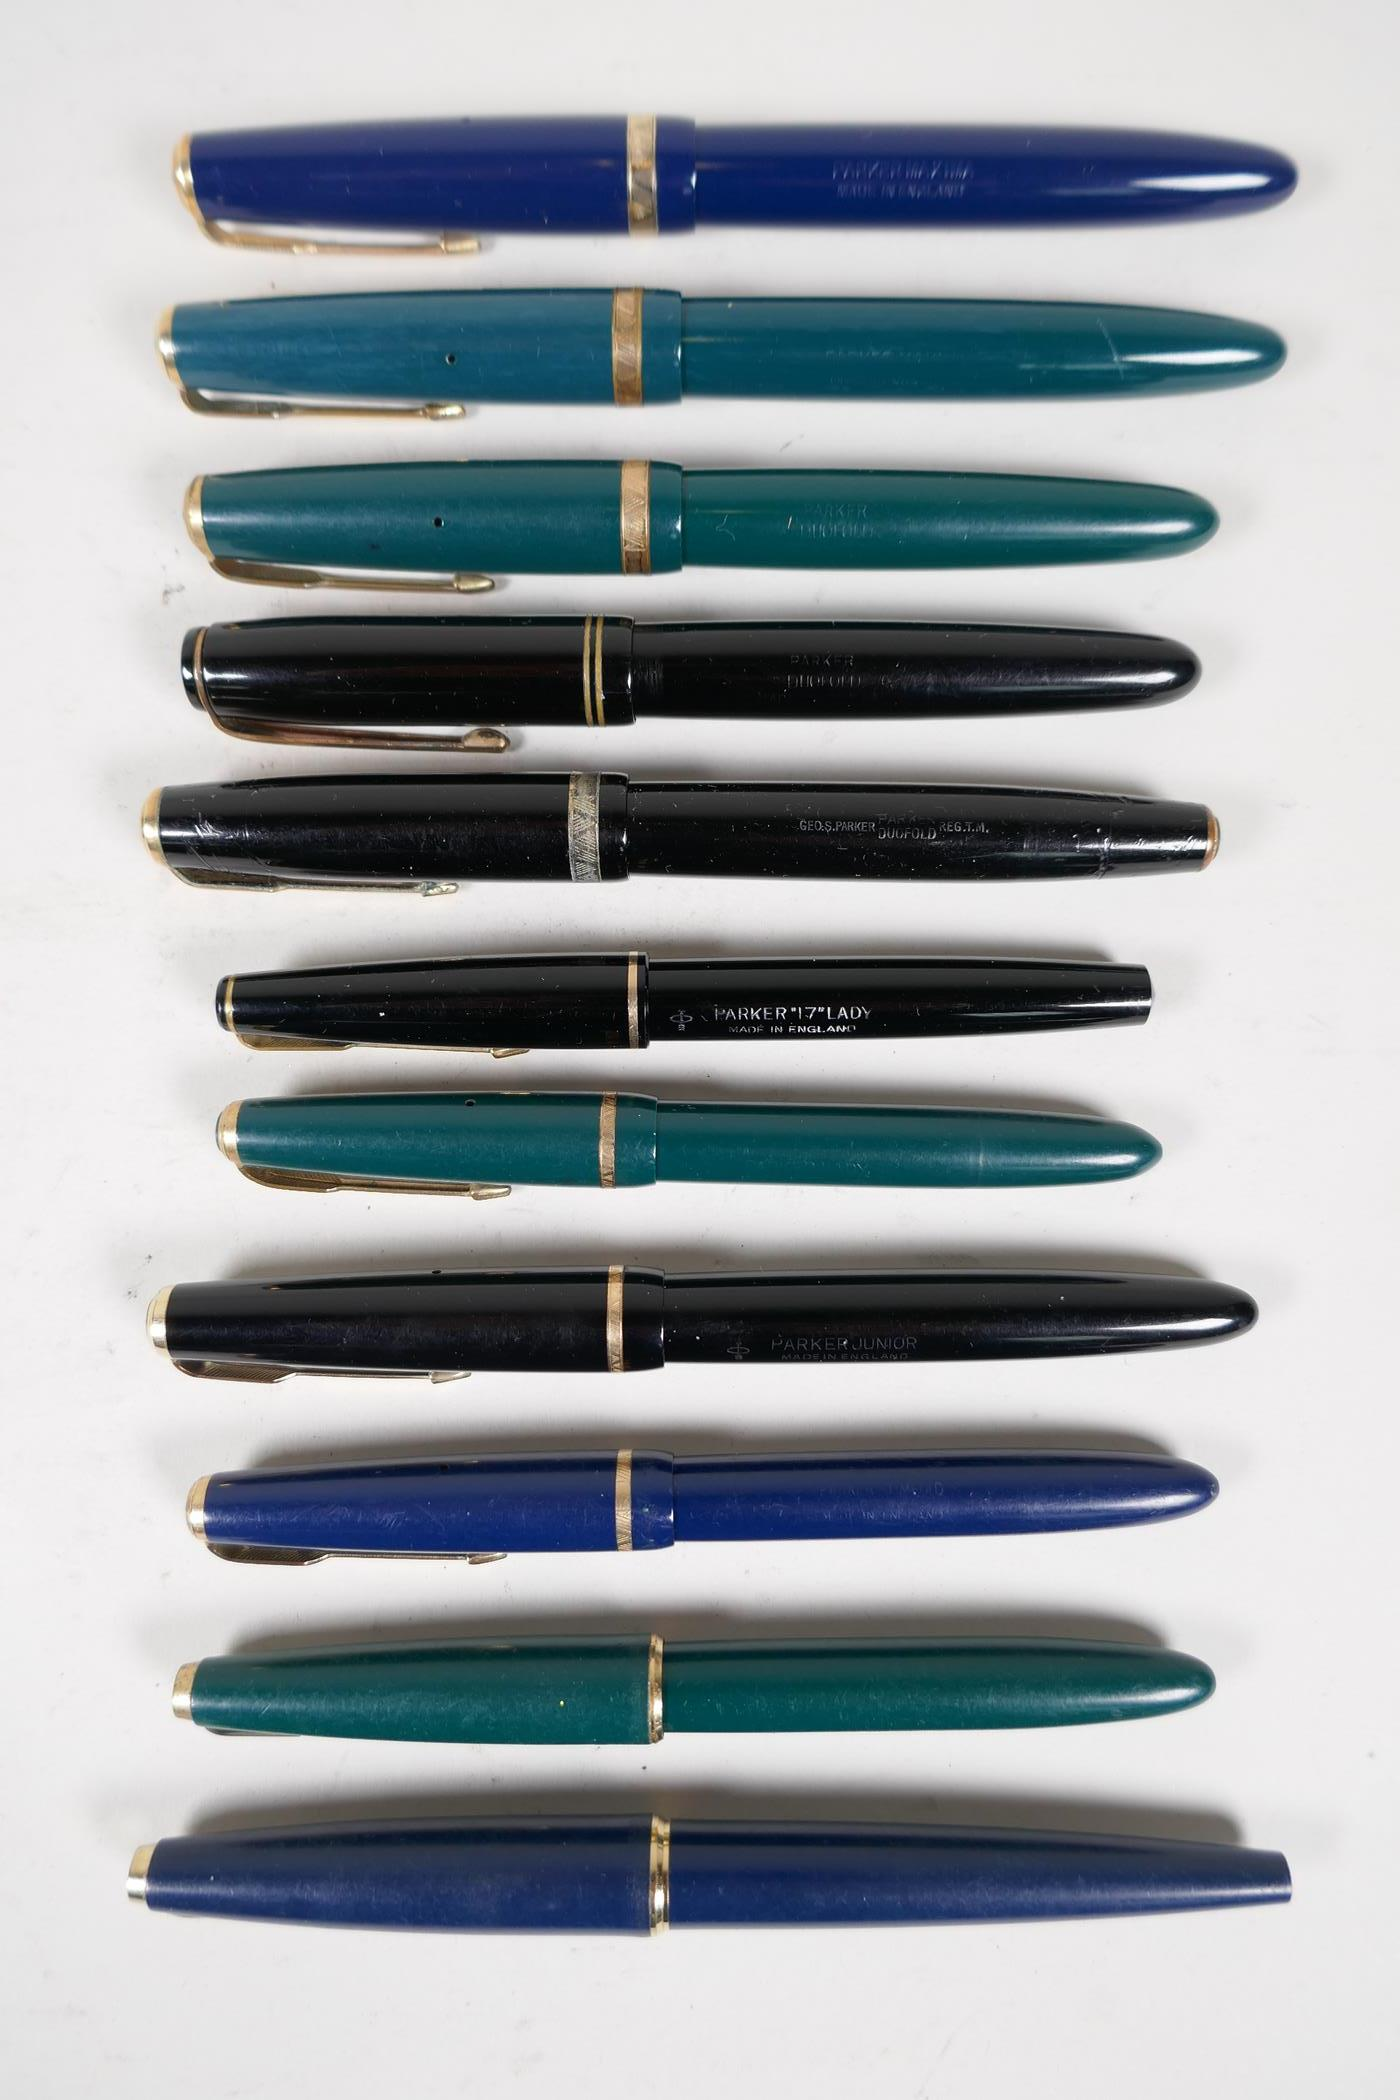 An assortment of Parker fountain pens, including two 'Maxima Duofold', three 'Duofold', two 'lady'